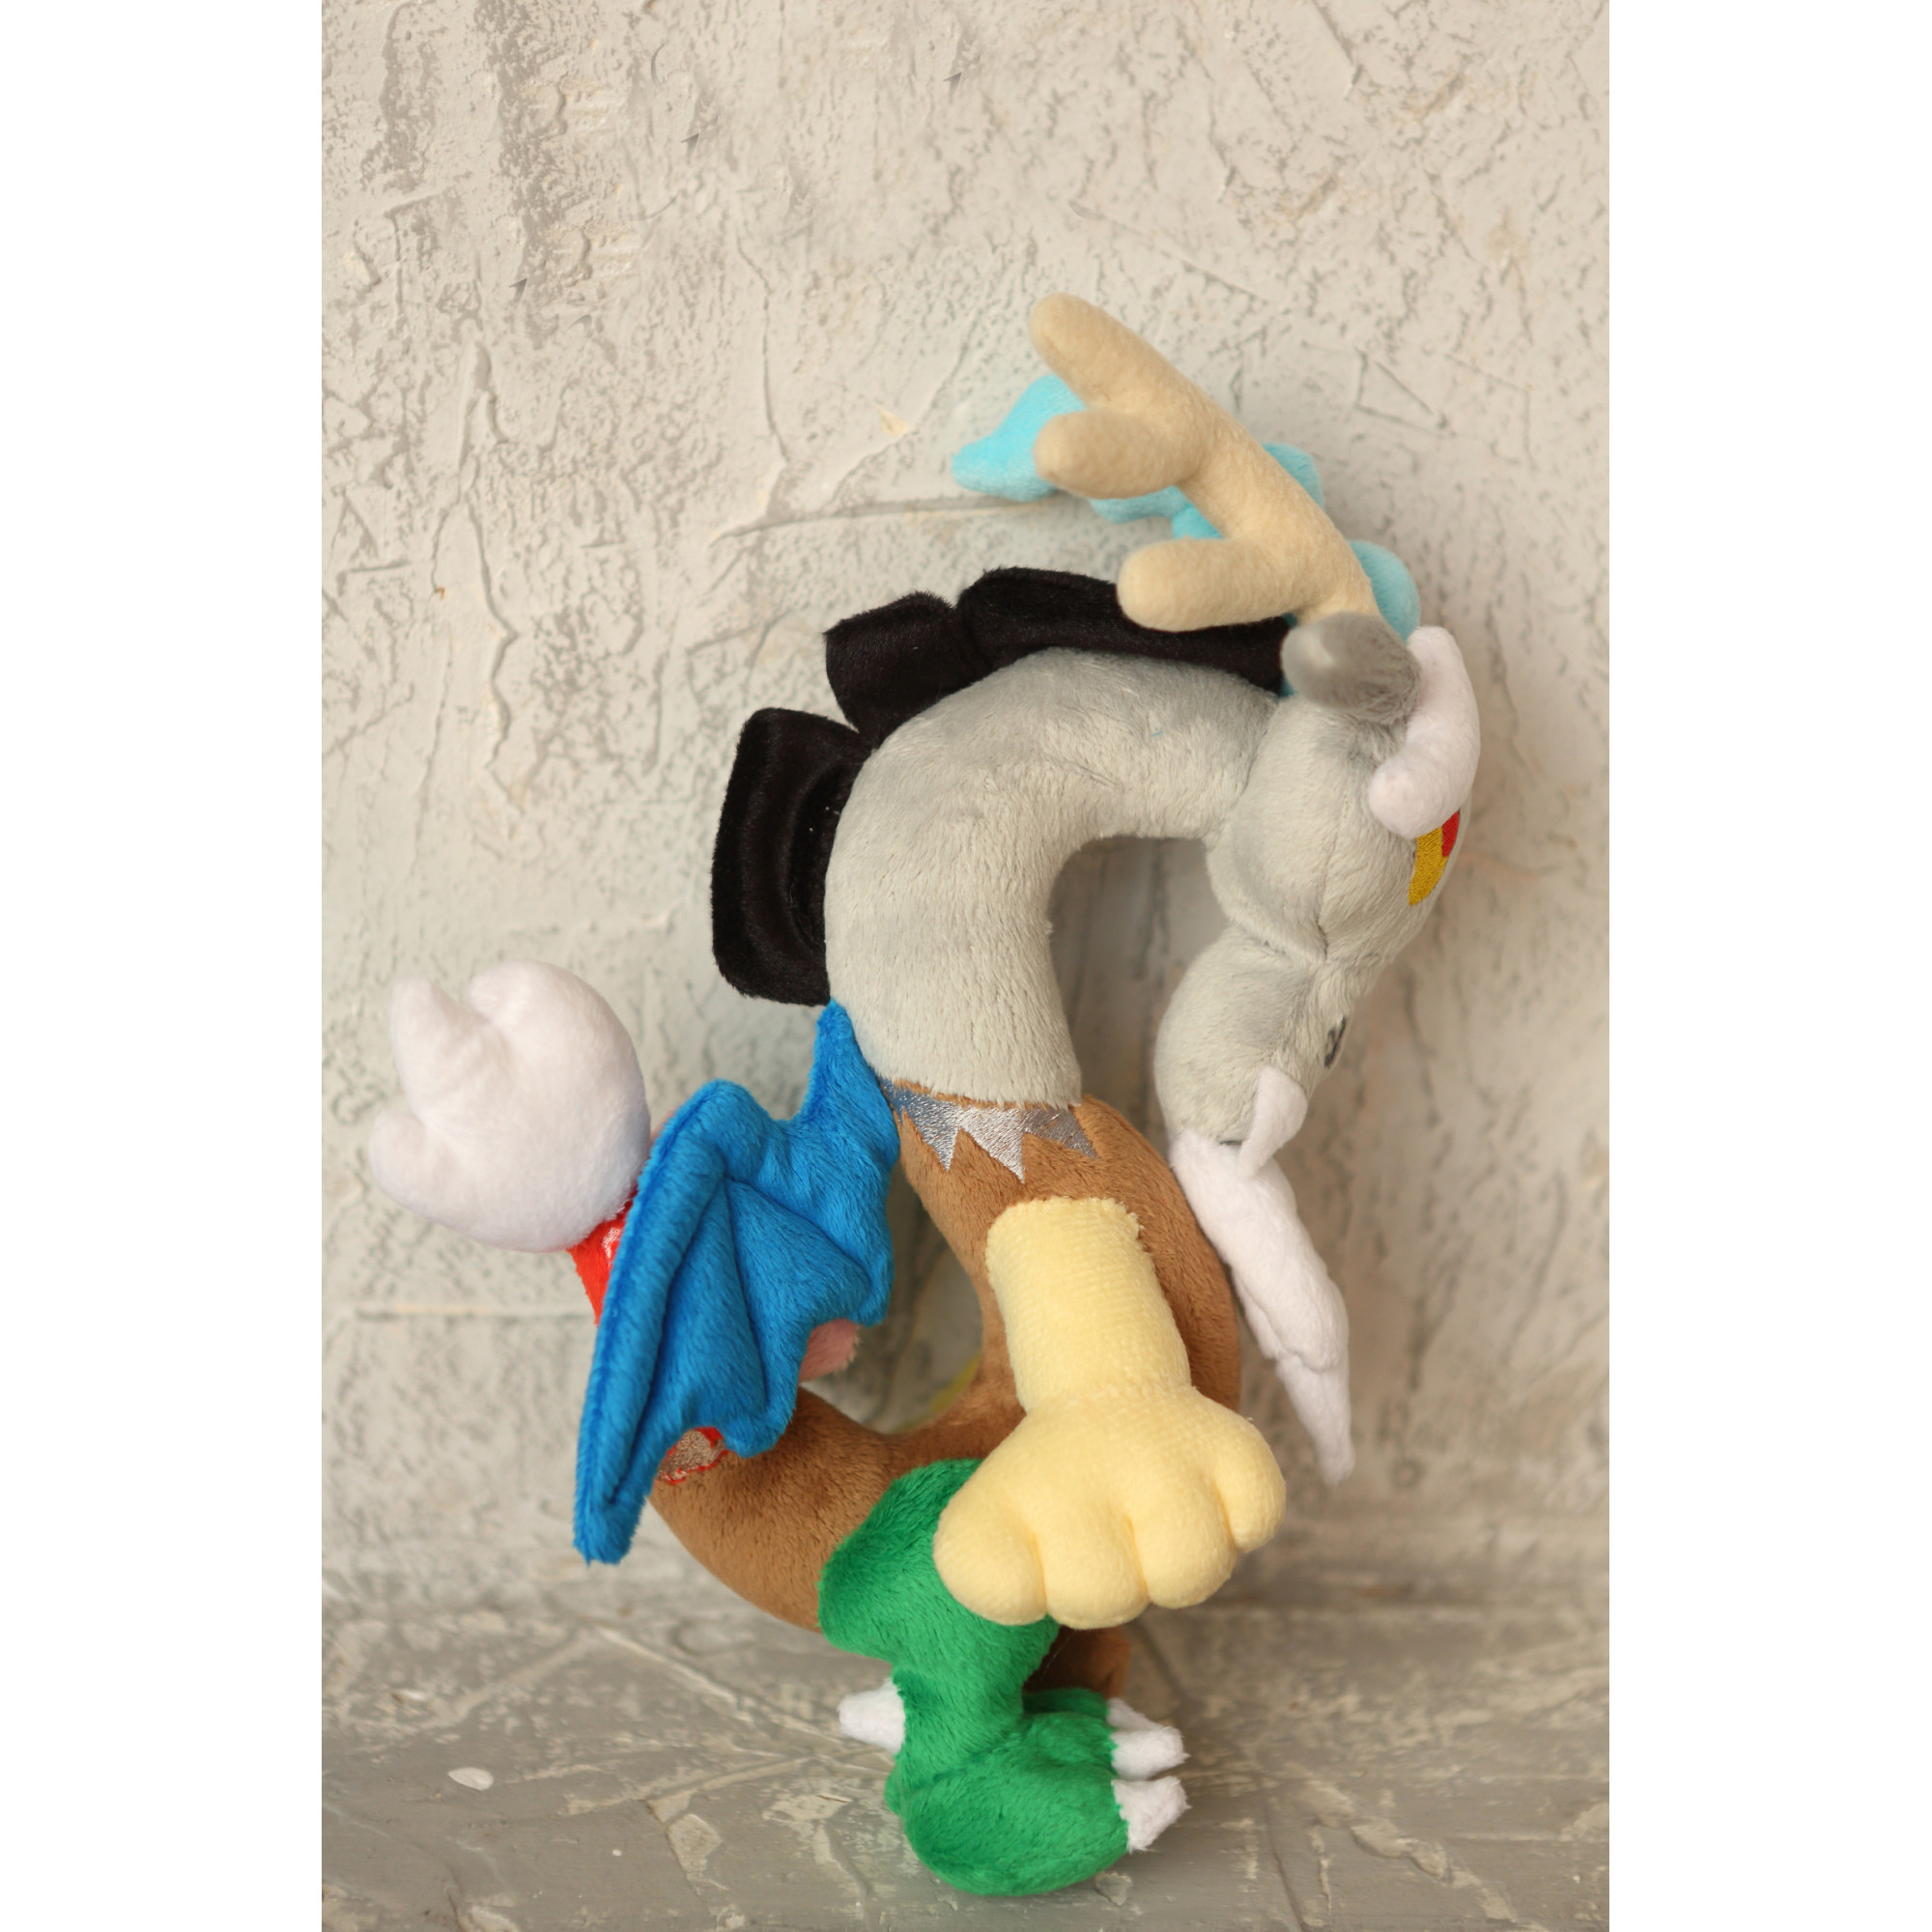 Hand-sewn Plush Discord stuffed Toy for kids